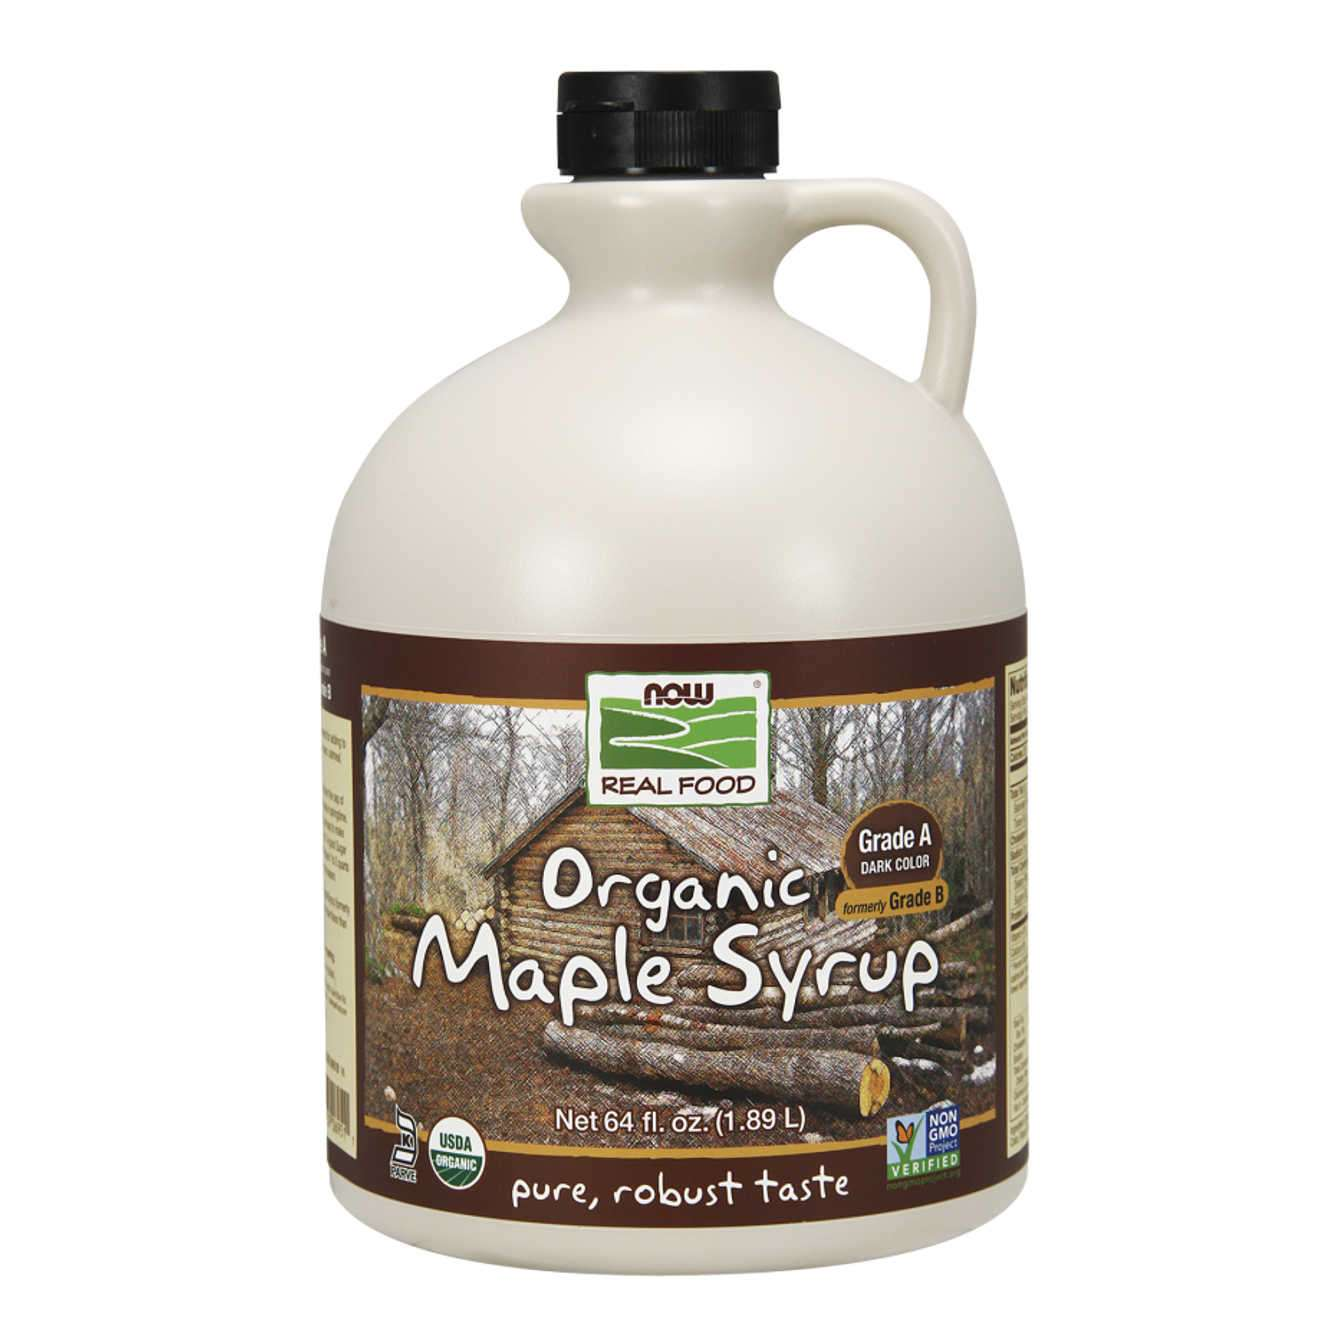 ORGANIC MAPLE SYRUP GRADE A DARK COLOR